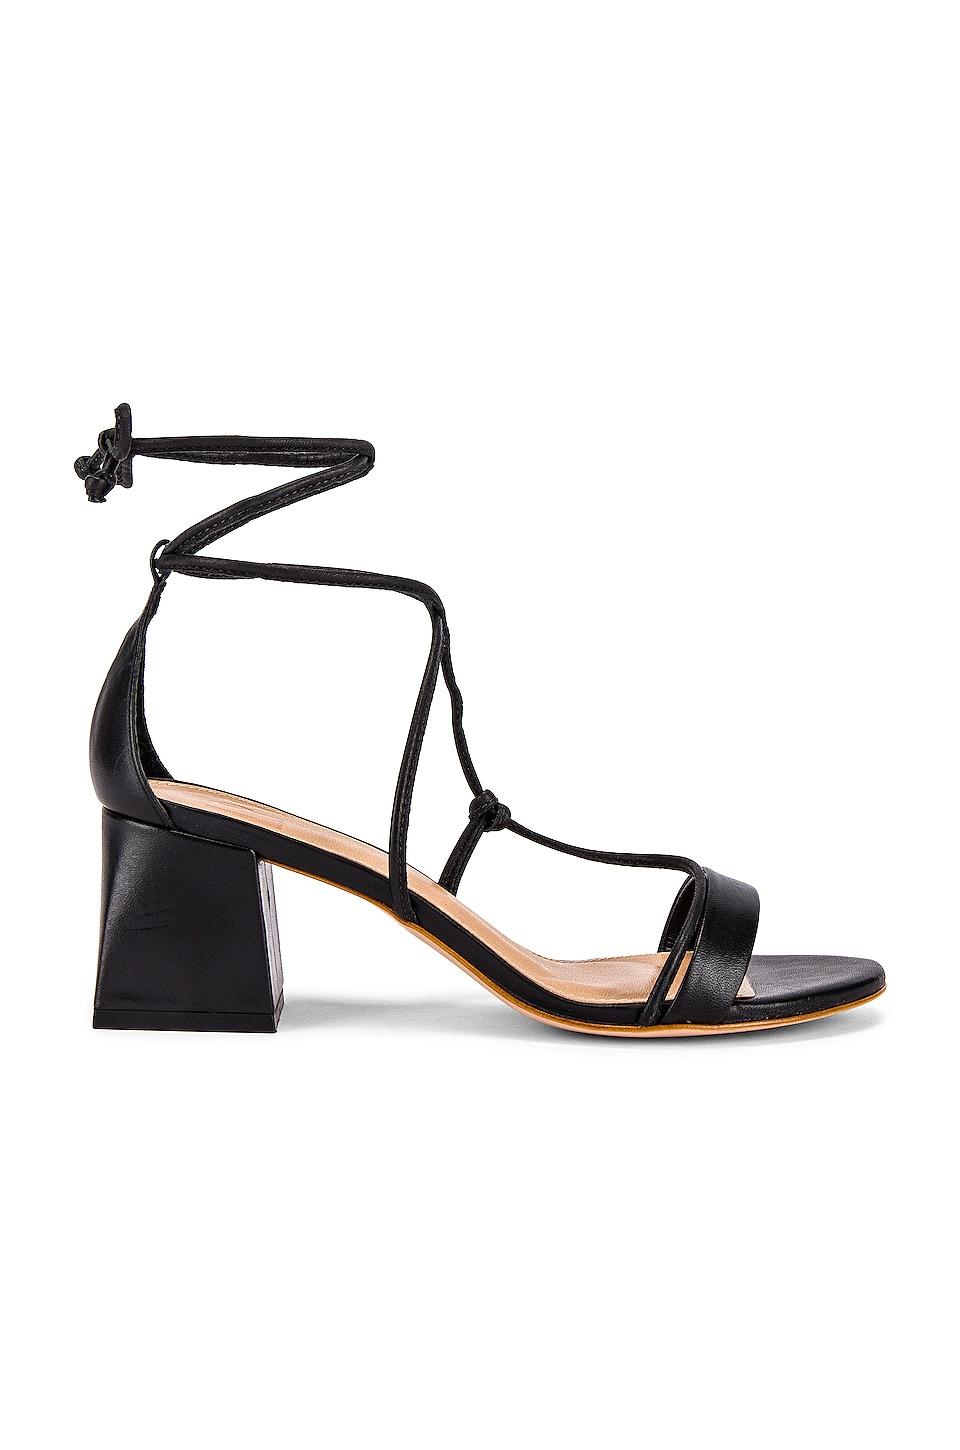 LPA Addalyn Heel in Black